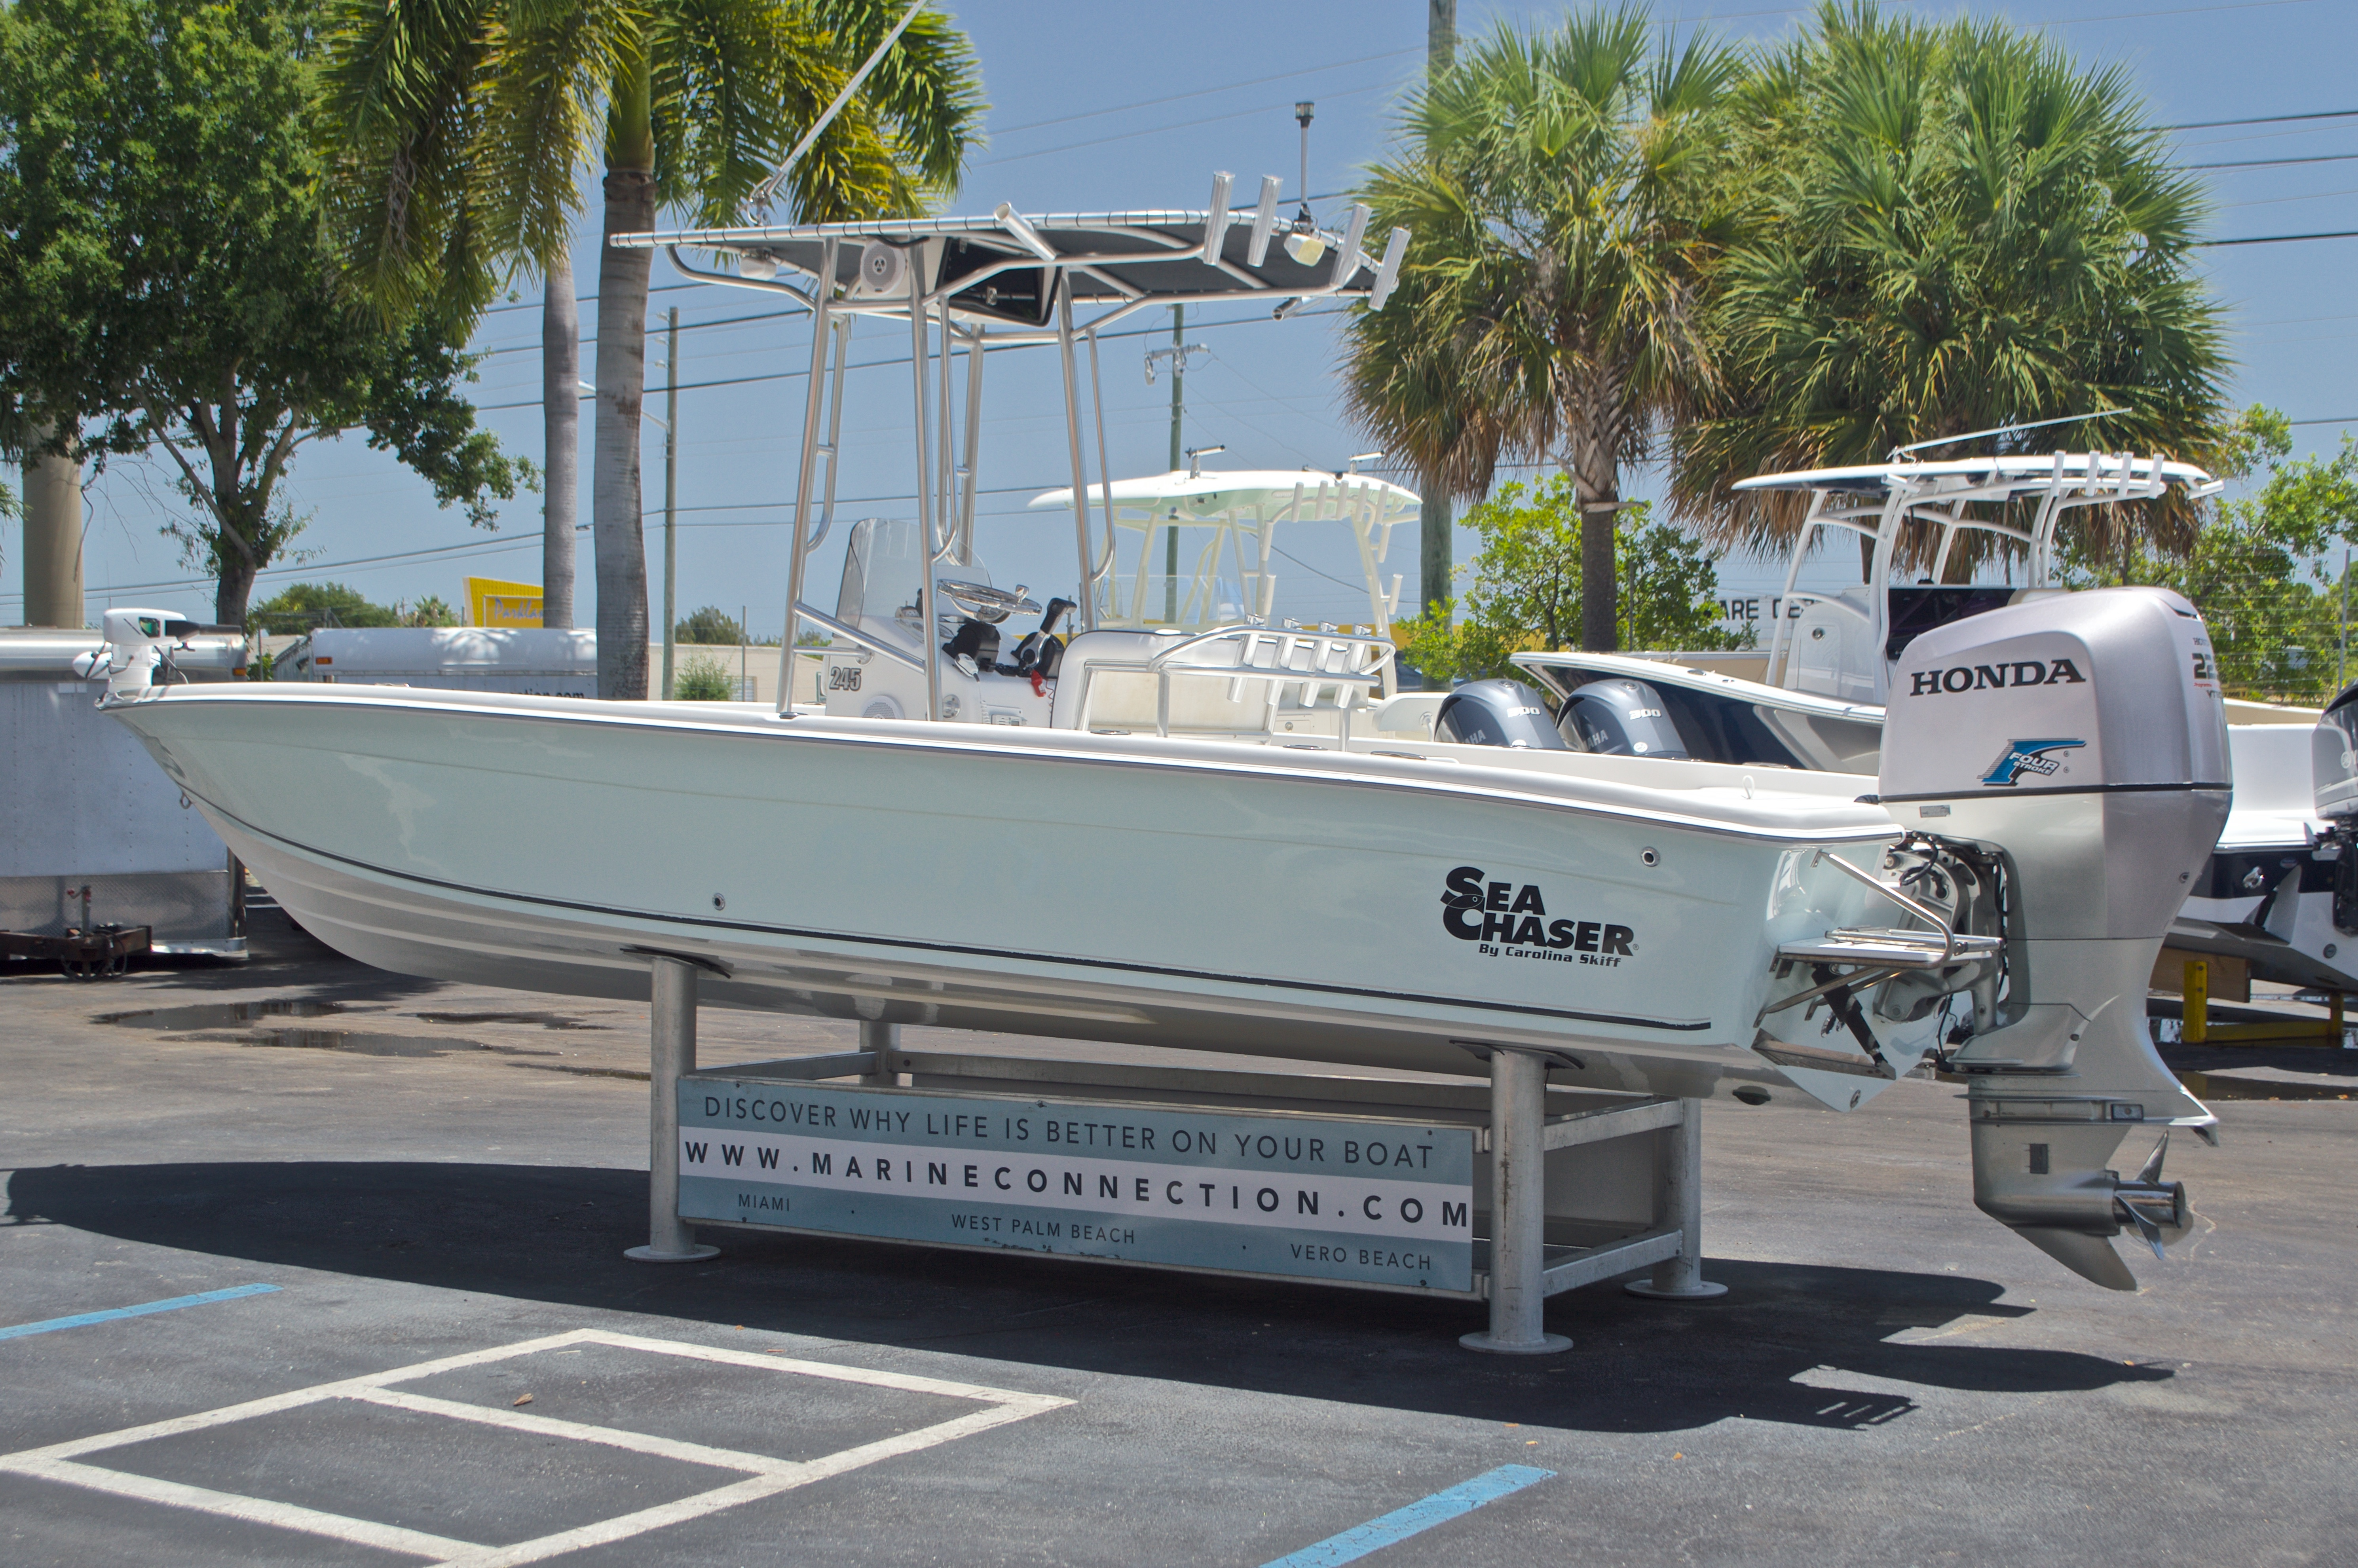 Thumbnail 5 for Used 2005 Sea Chaser 245 Bay Runner LX boat for sale in West Palm Beach, FL